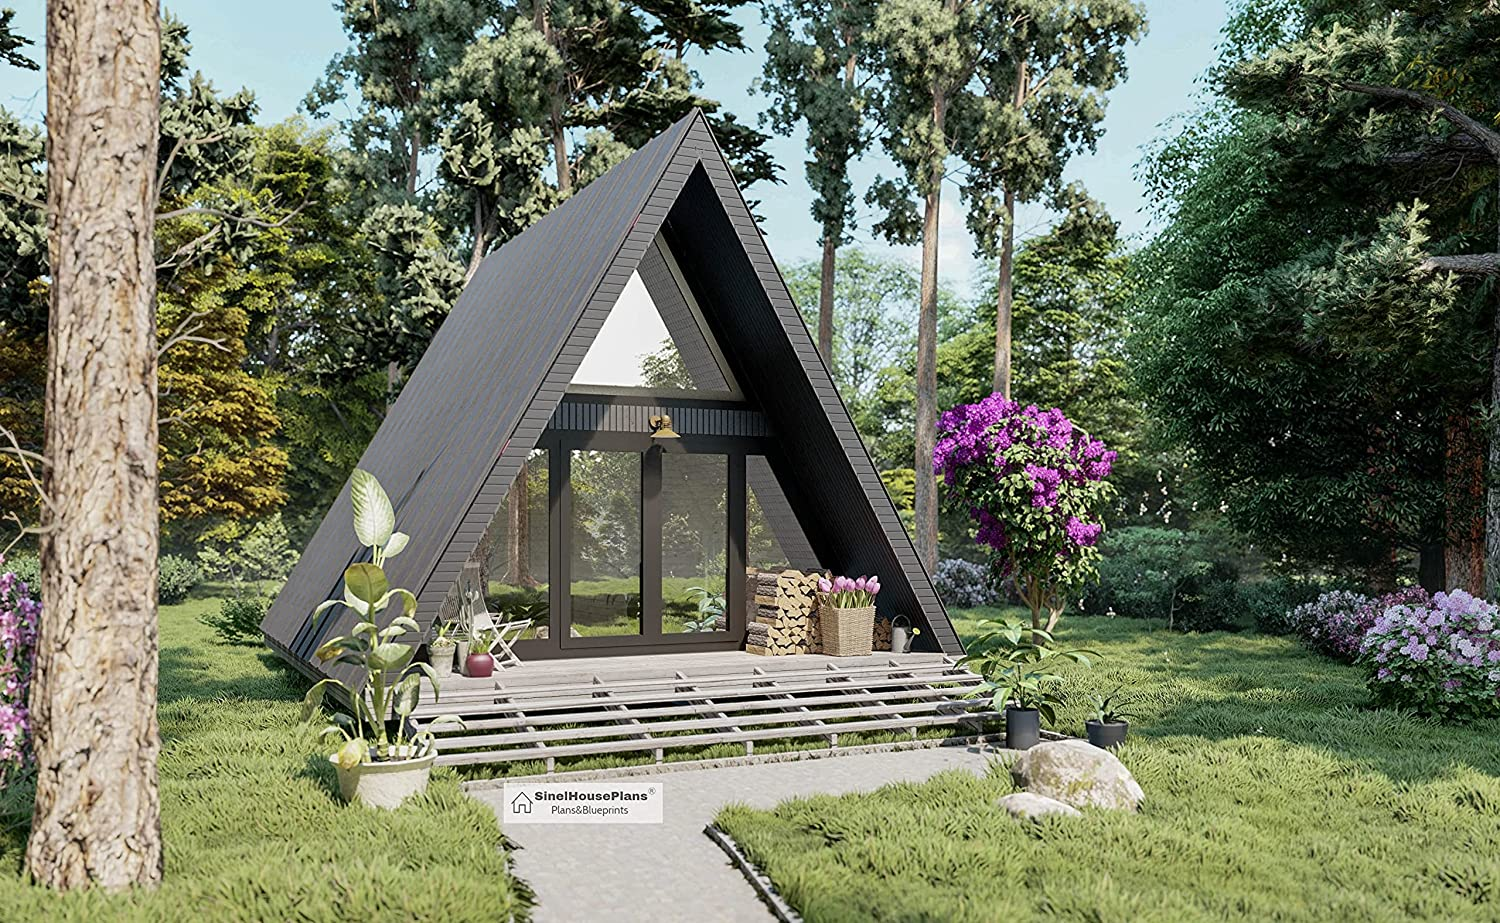 A-Frame Discount is also underway two Story Tiny House Plans B 26' Triangular New life Cabin x 20'